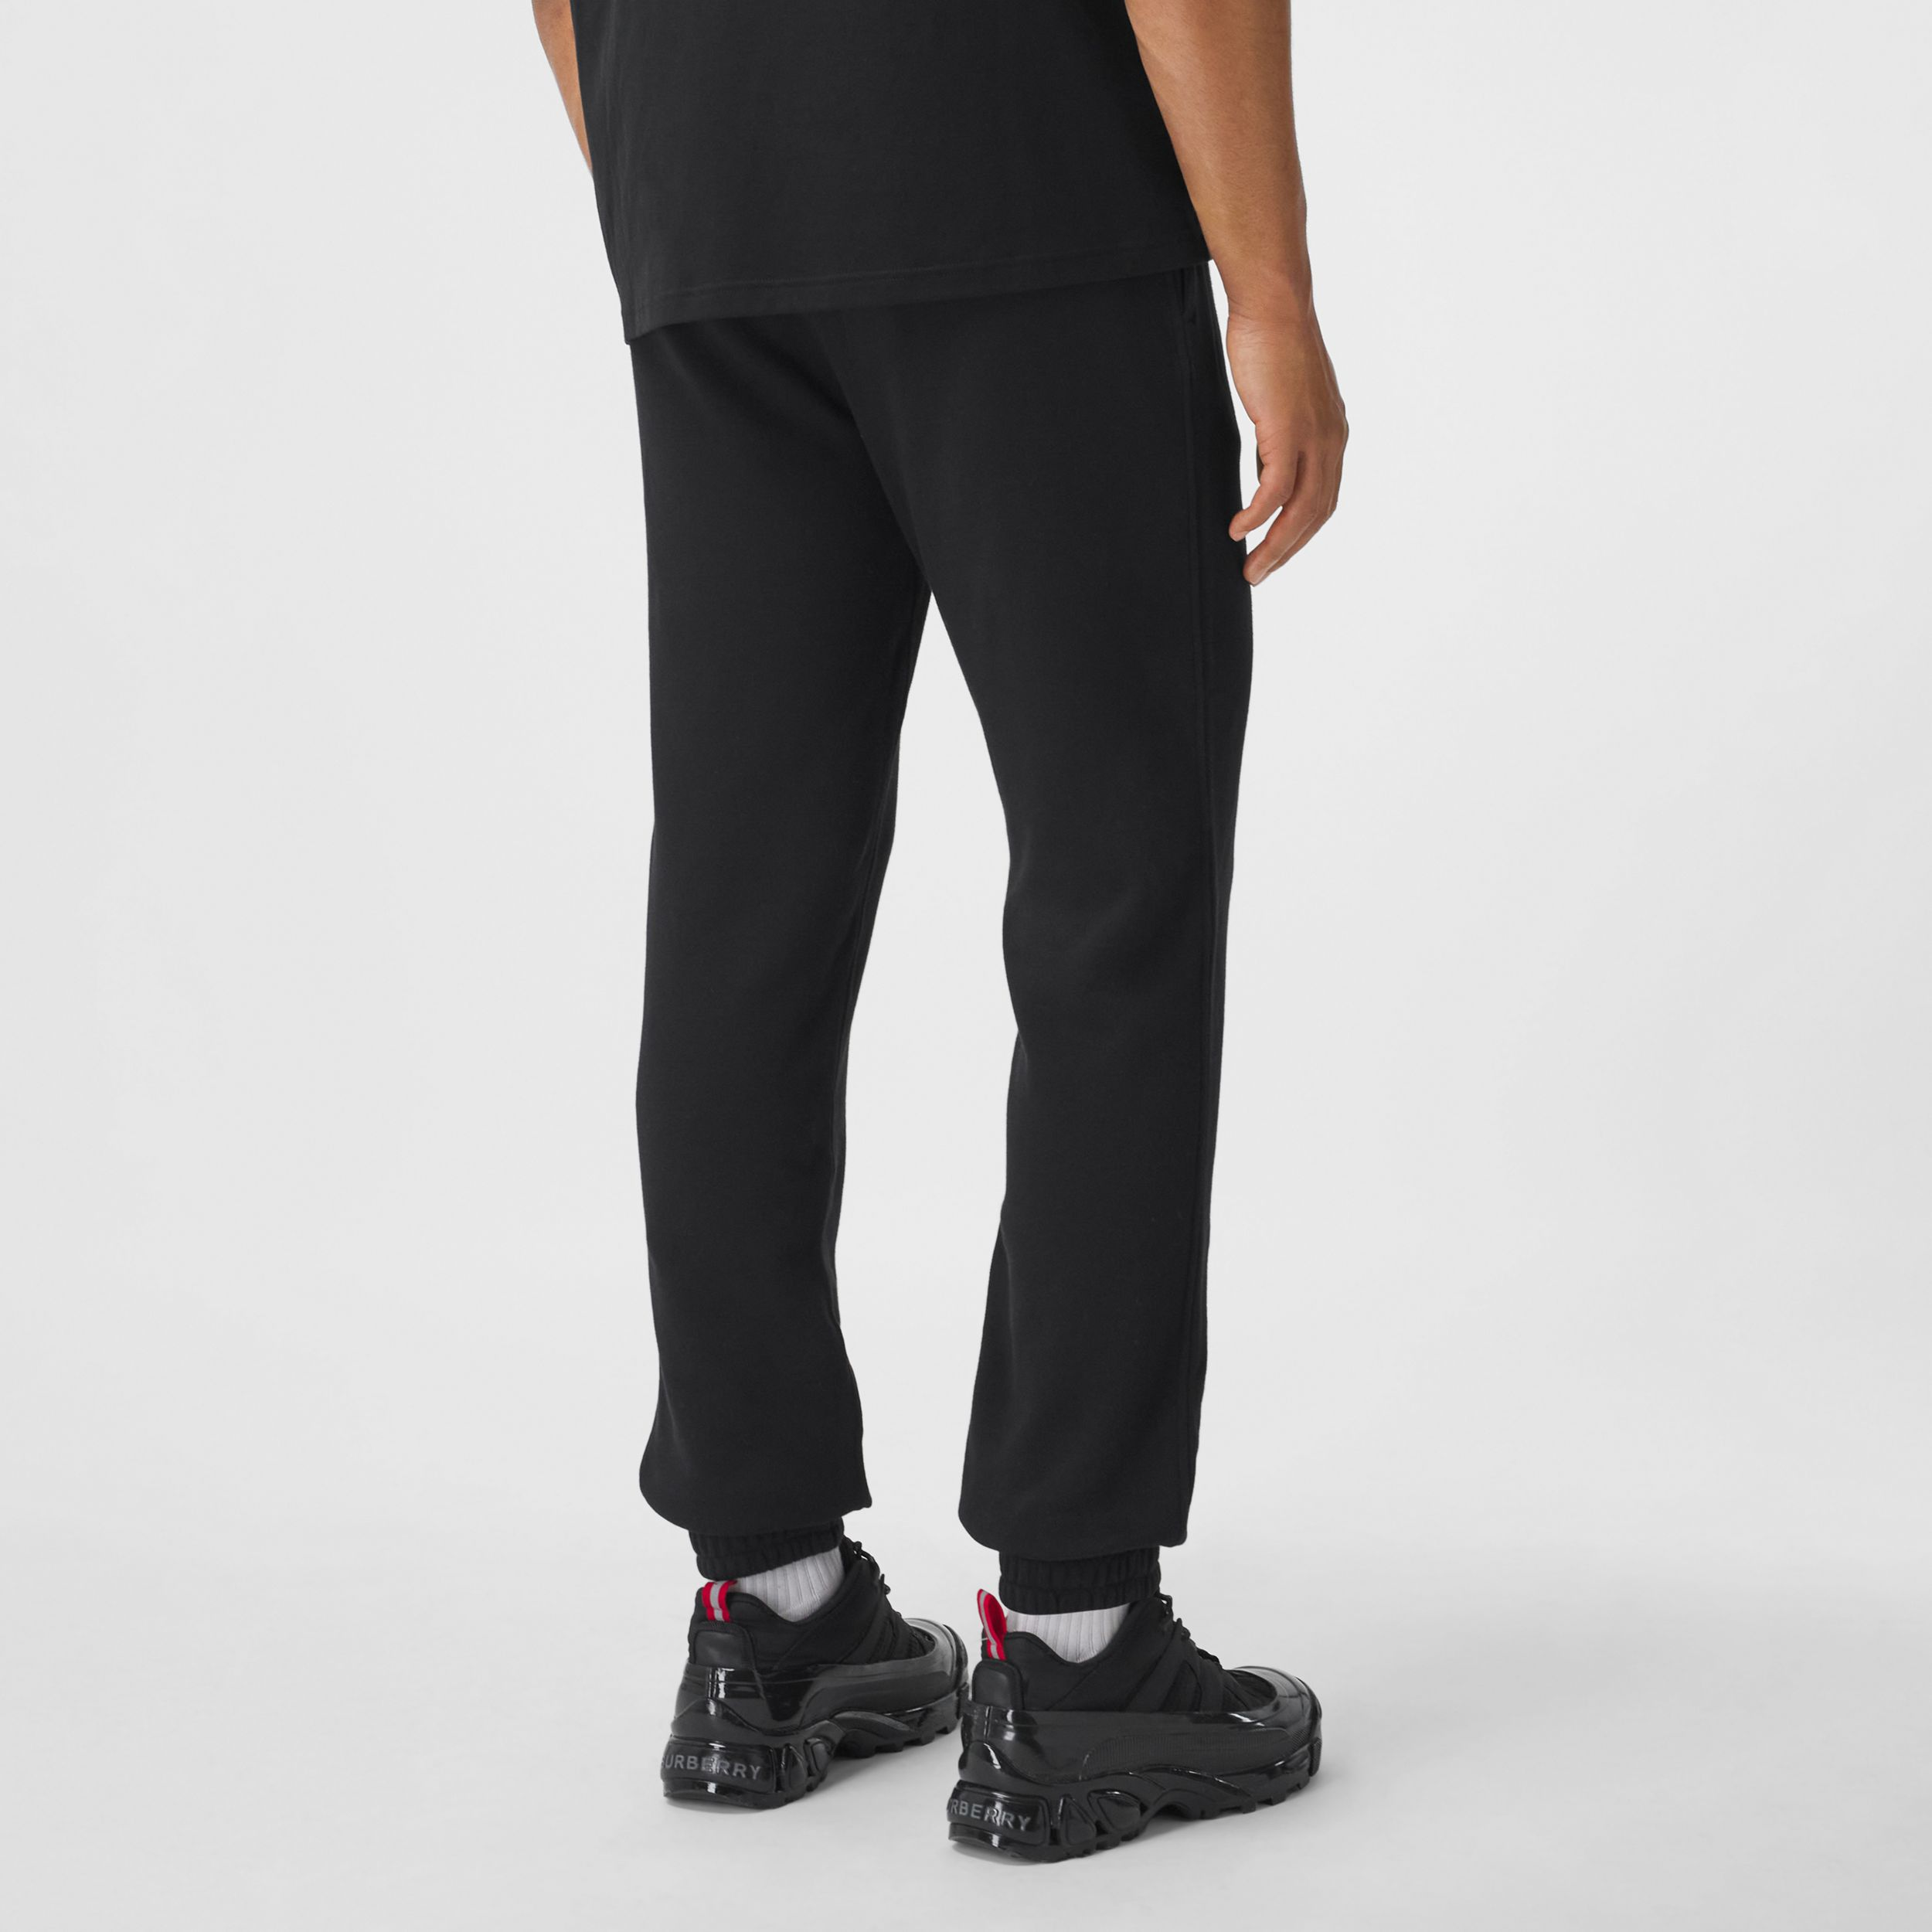 Logo Graphic Appliqué Cotton Jogging Pants in Black - Men | Burberry Canada - 3